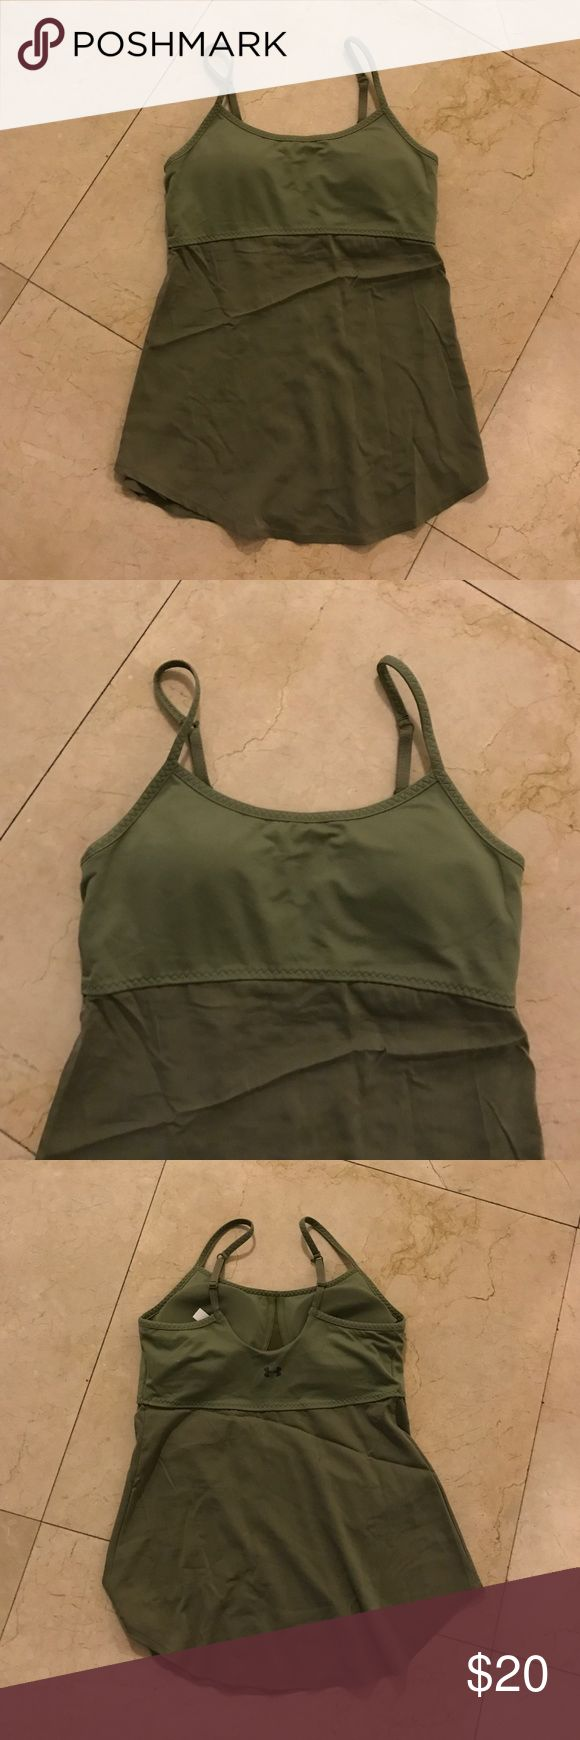 Olive Under Amor Work Out Shirt with Built in Bra Very cute shirt but a bit too long on me. Built in bra with cups and adjustable straps. Bottom half of shirt is not tight as upper bra part. Under Armour Tops Tank Tops